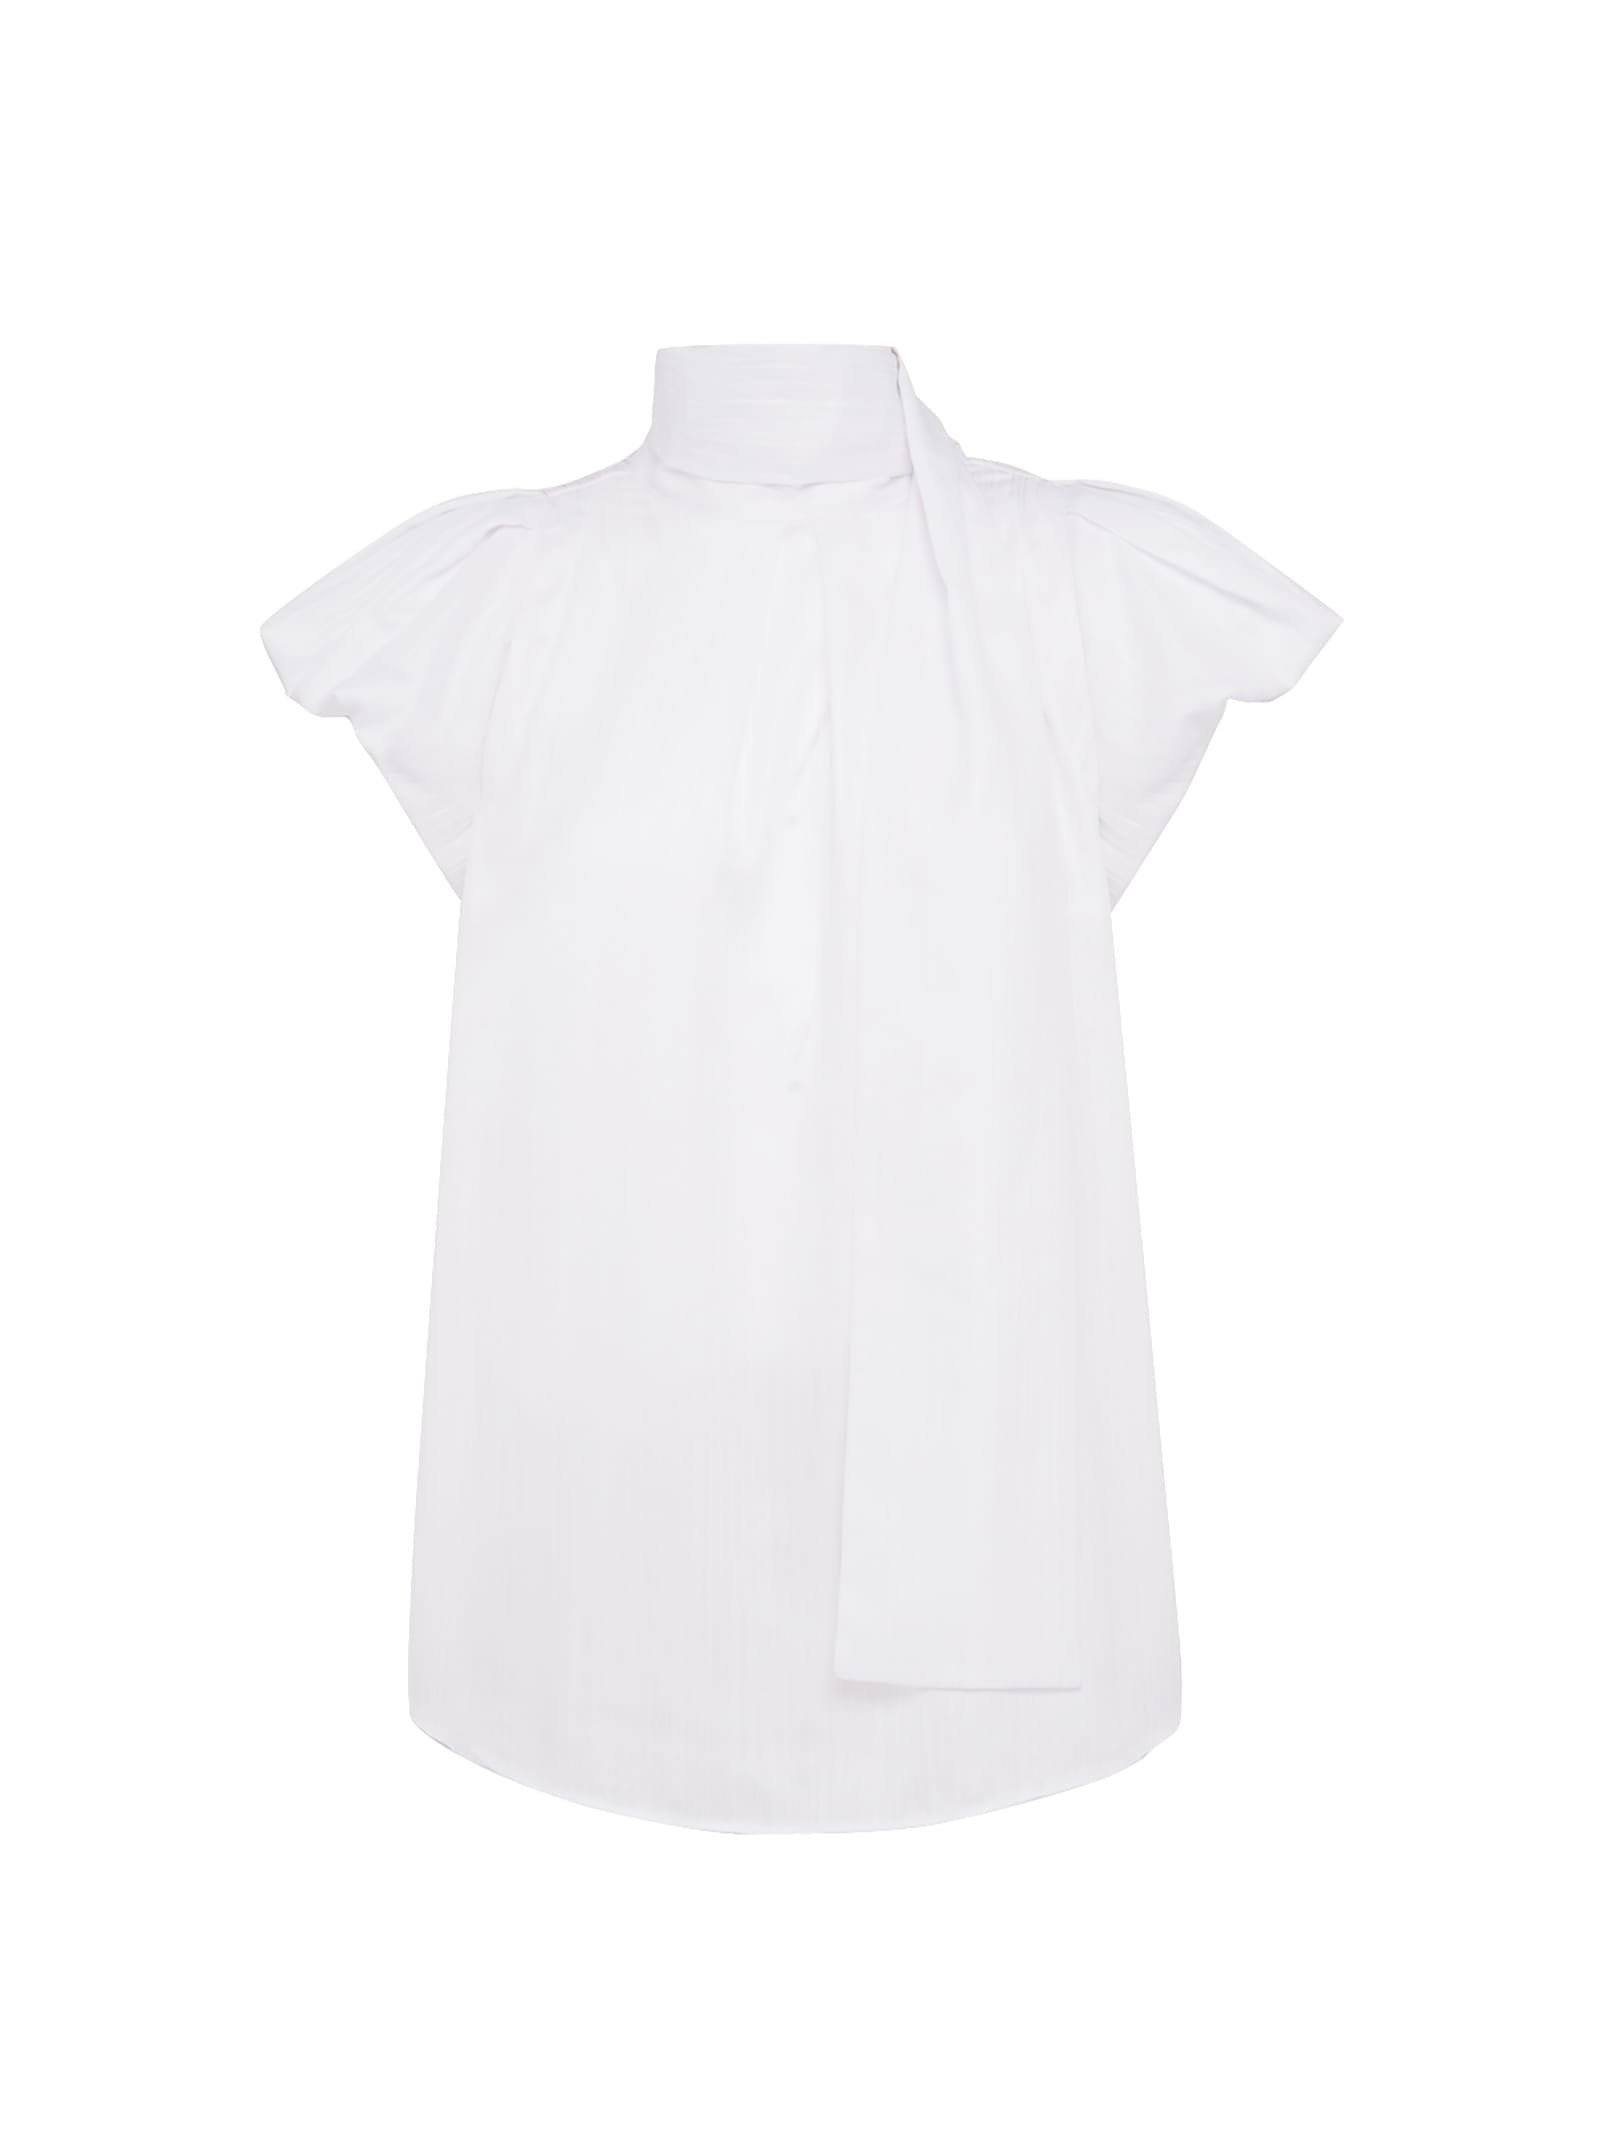 White Blouse With Puffball Sleeves